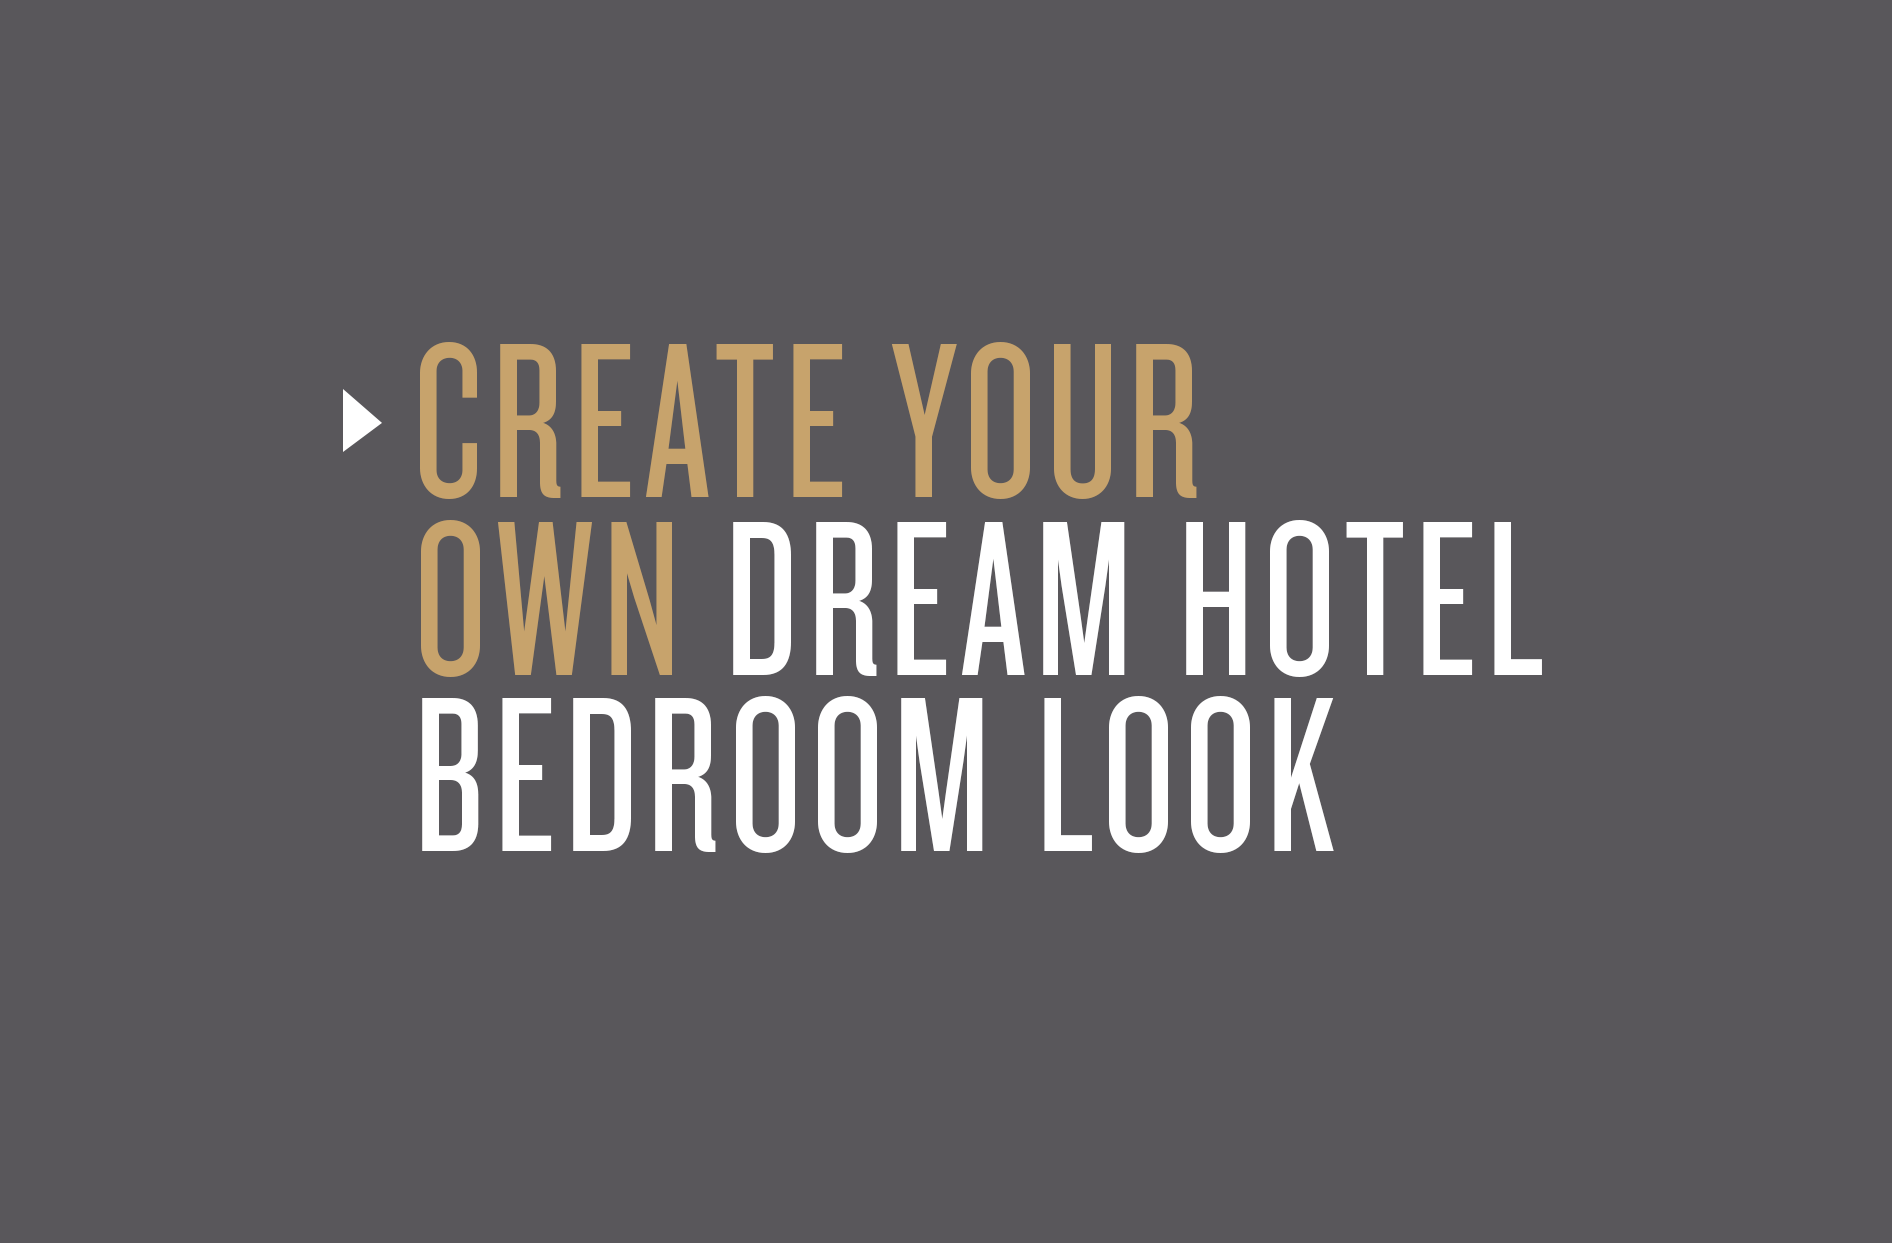 From Any Of Our Hotel Inspired Collections To Create Your Own Dream